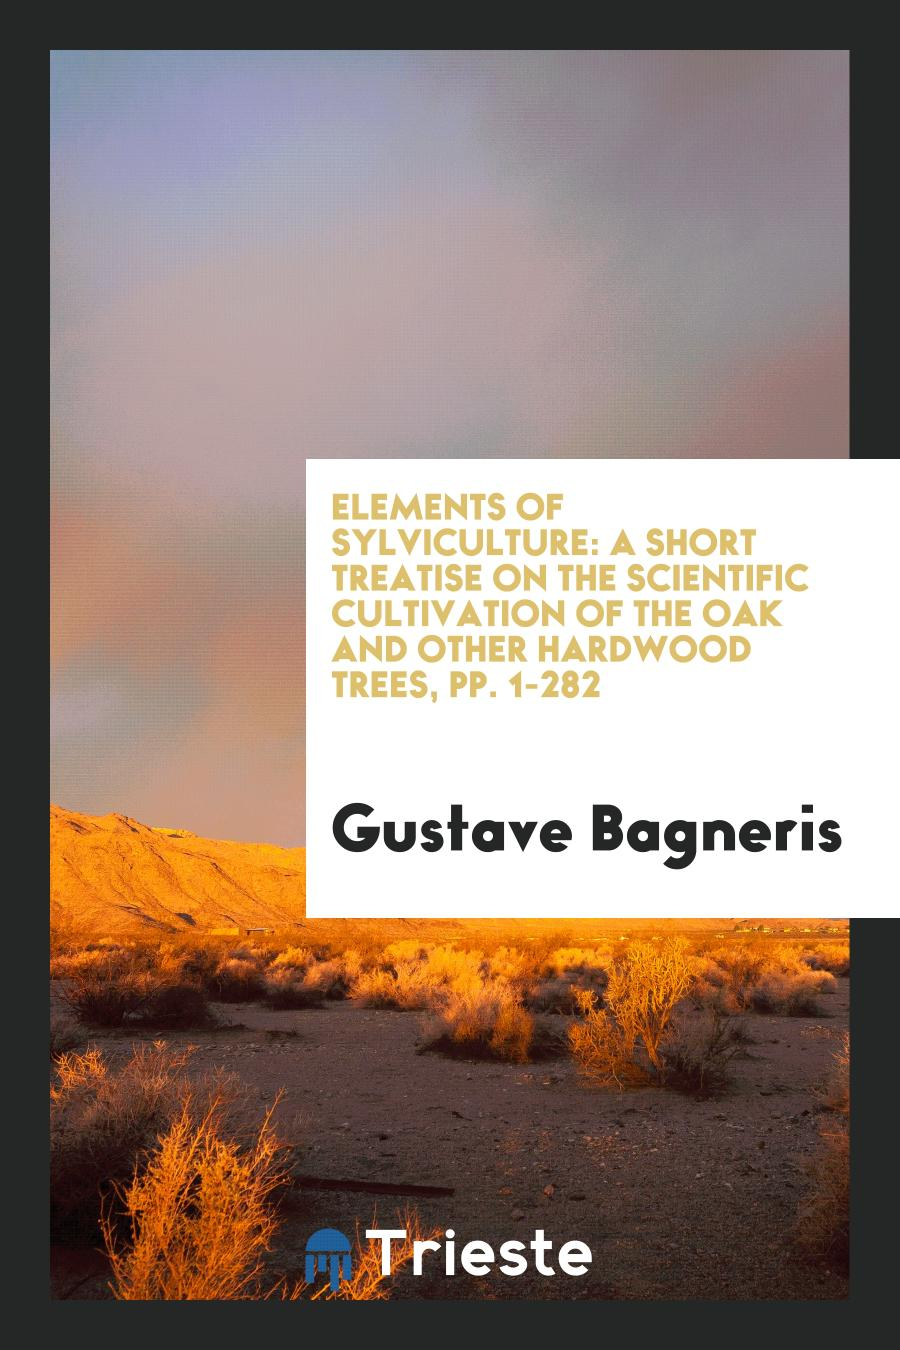 Elements of Sylviculture: A Short Treatise on the Scientific Cultivation of the Oak and Other Hardwood Trees, pp. 1-282